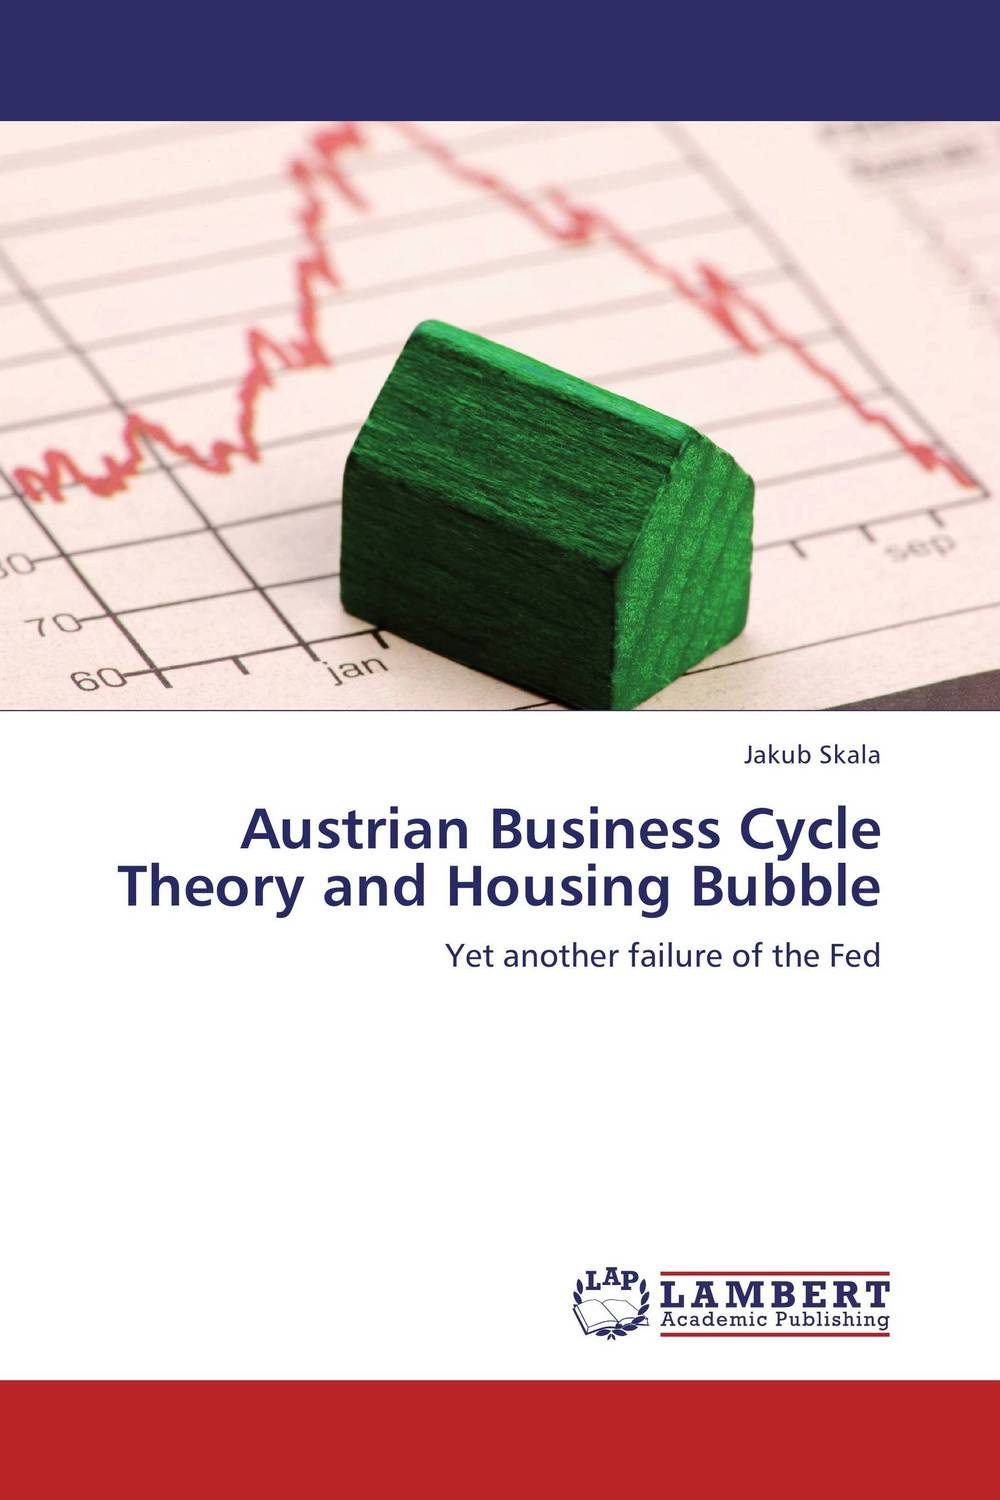 Austrian Business Cycle Theory and Housing Bubble